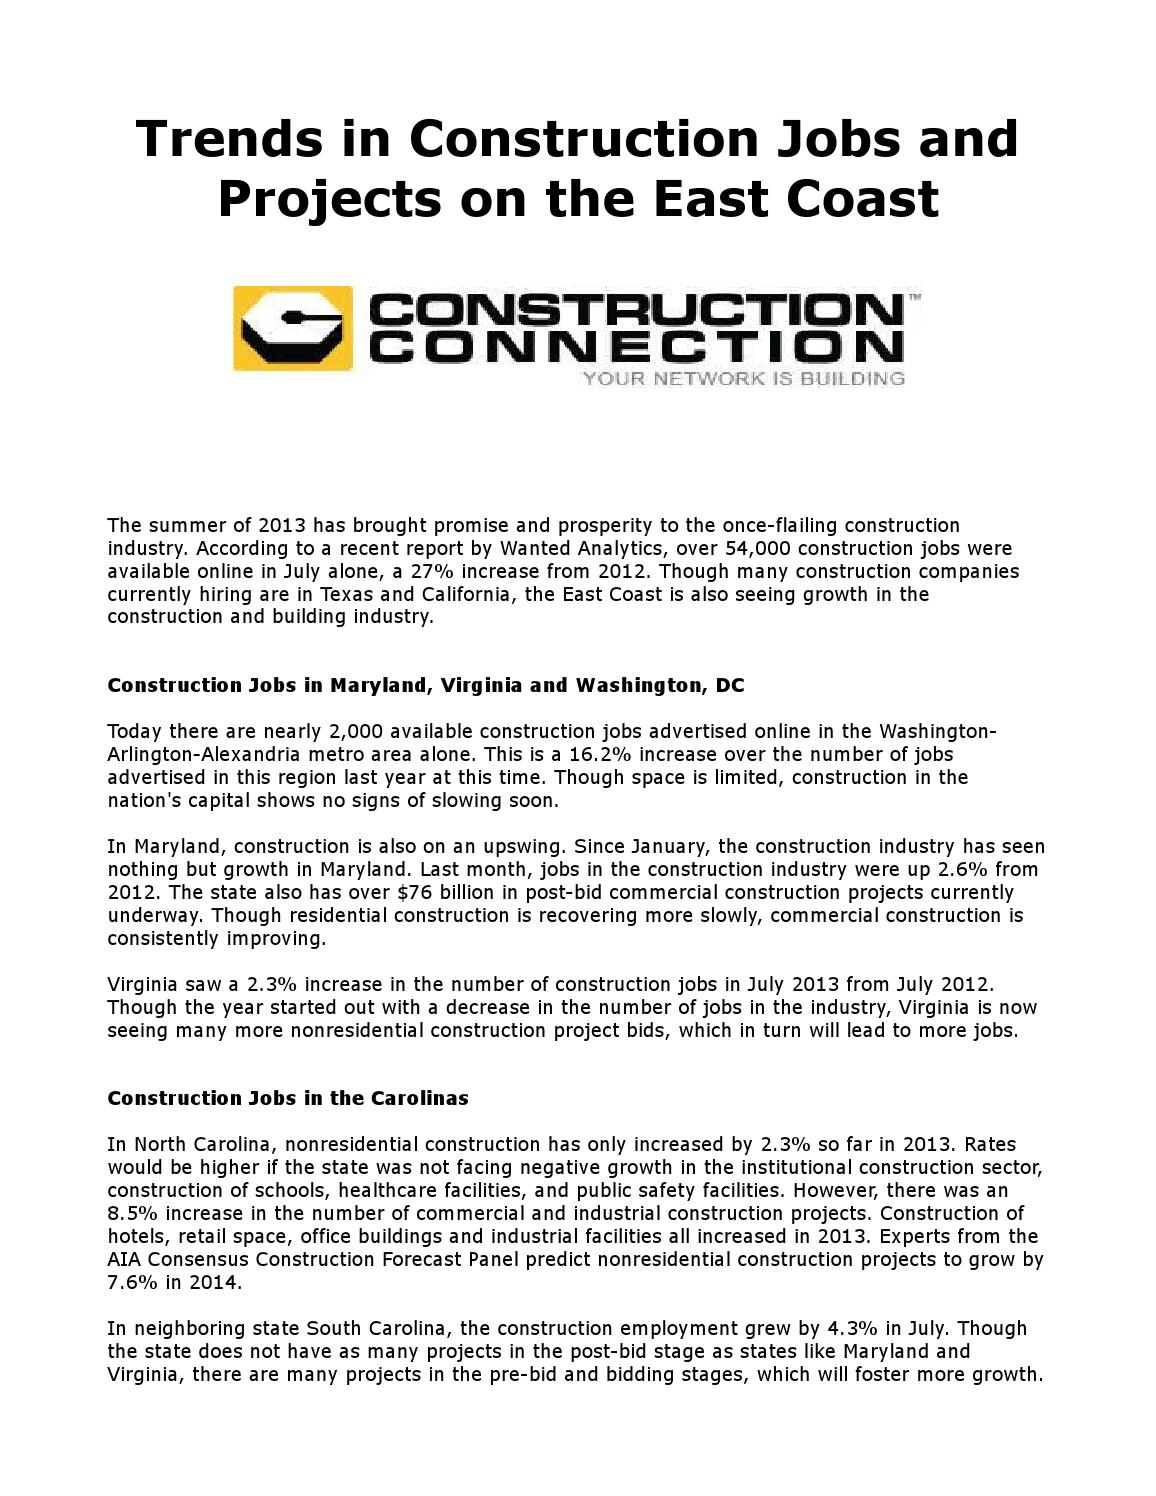 trends in construction jobs and projects on the east coast by kent